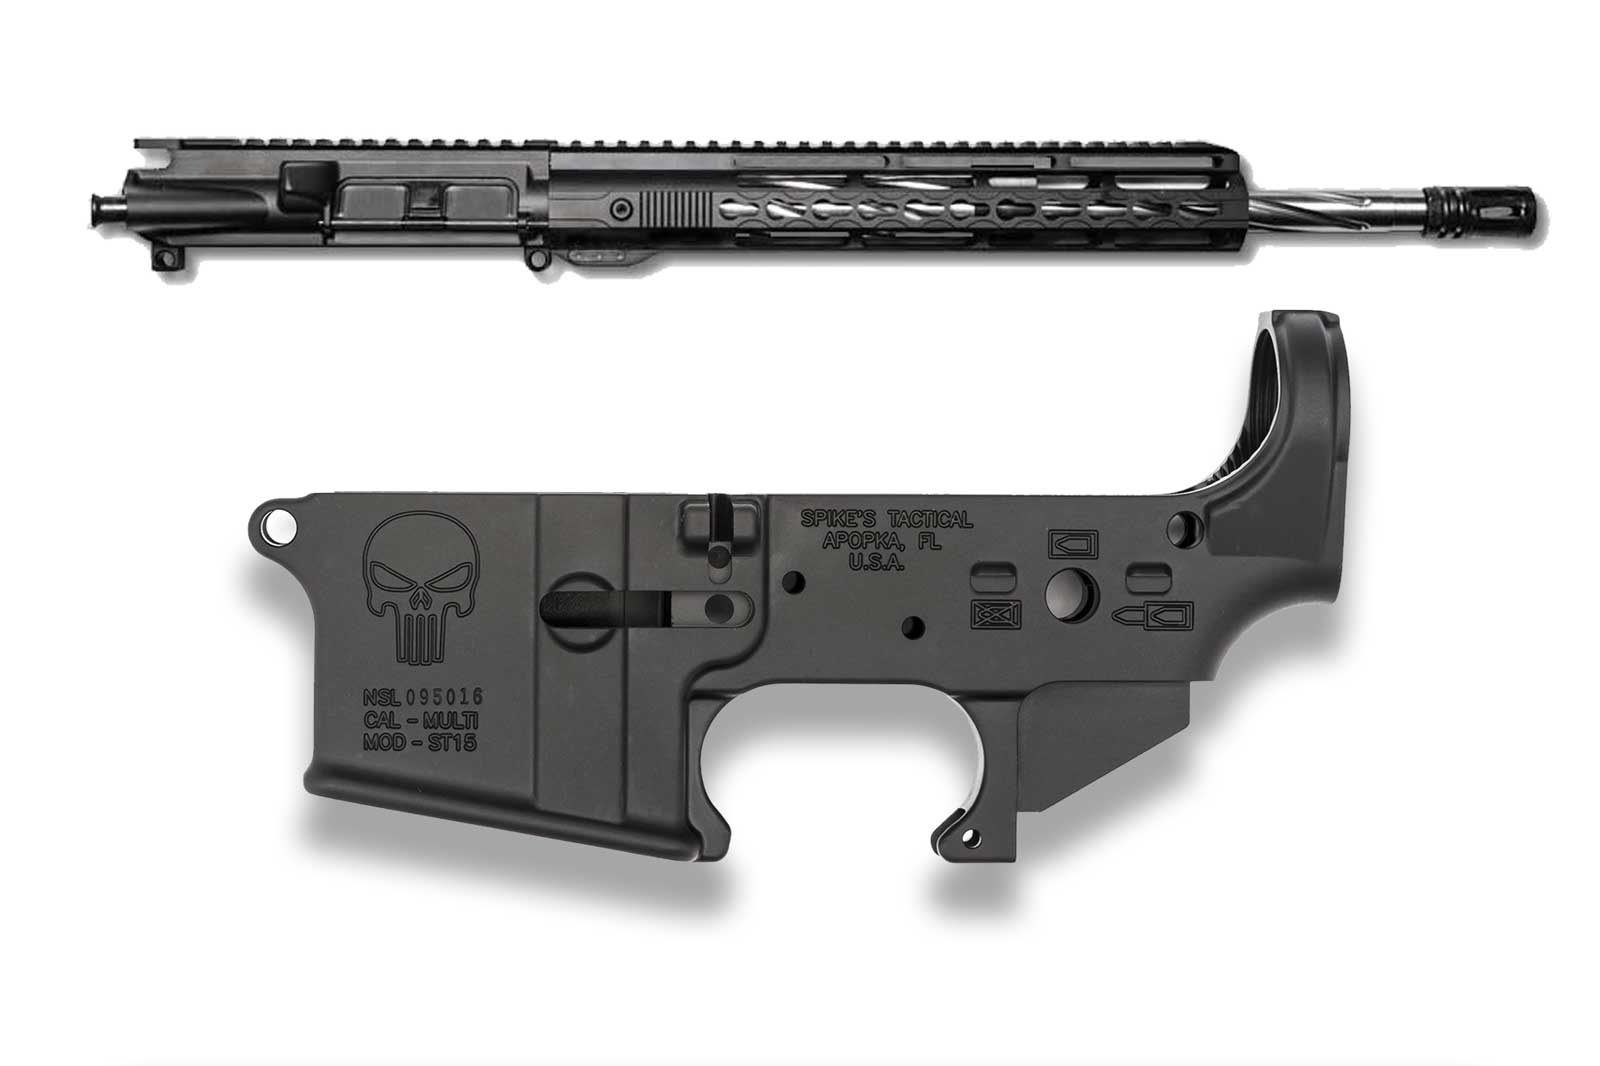 ar15-upper-assembly-with-spikes-tactical-lower-16-223-wylde-spiral-flute-punisher-160395